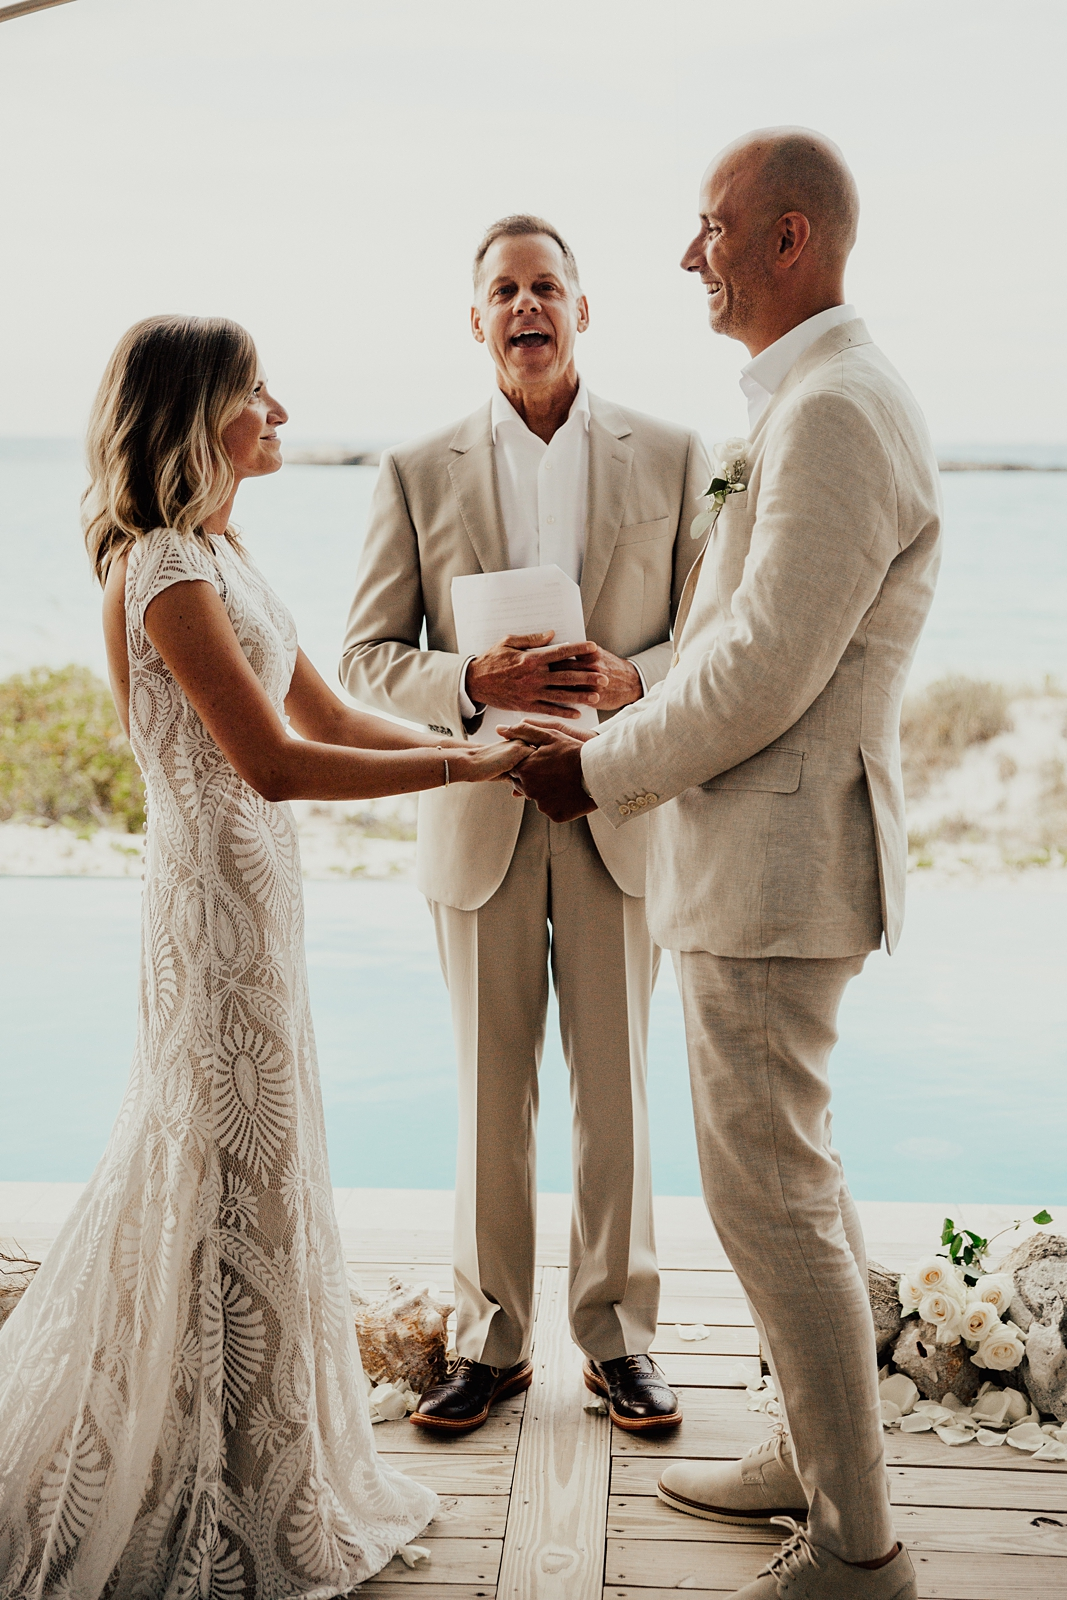 Jenni & Andrew Intimate Beach Destination Wedding in Little Exuma, Bahamas_0508.jpg